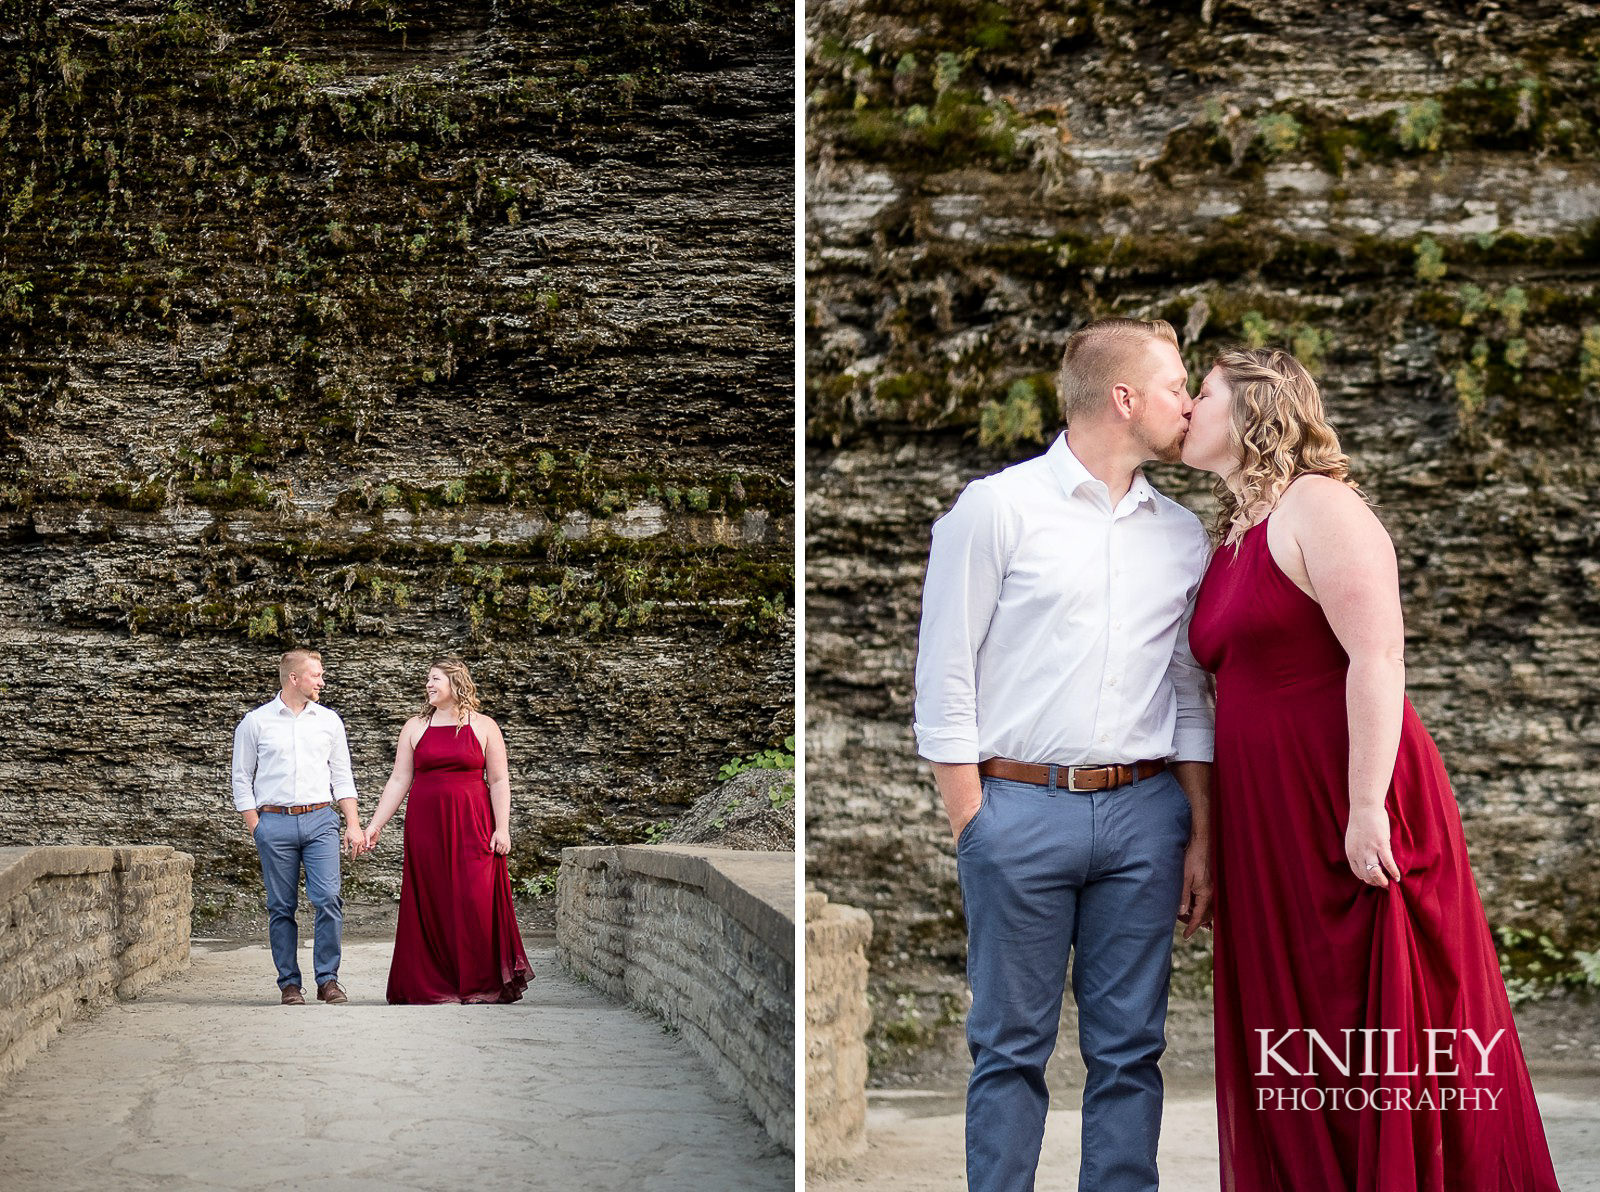 023 - Letchworth State Park Engagement Pictures - Blog collages 2.jpg